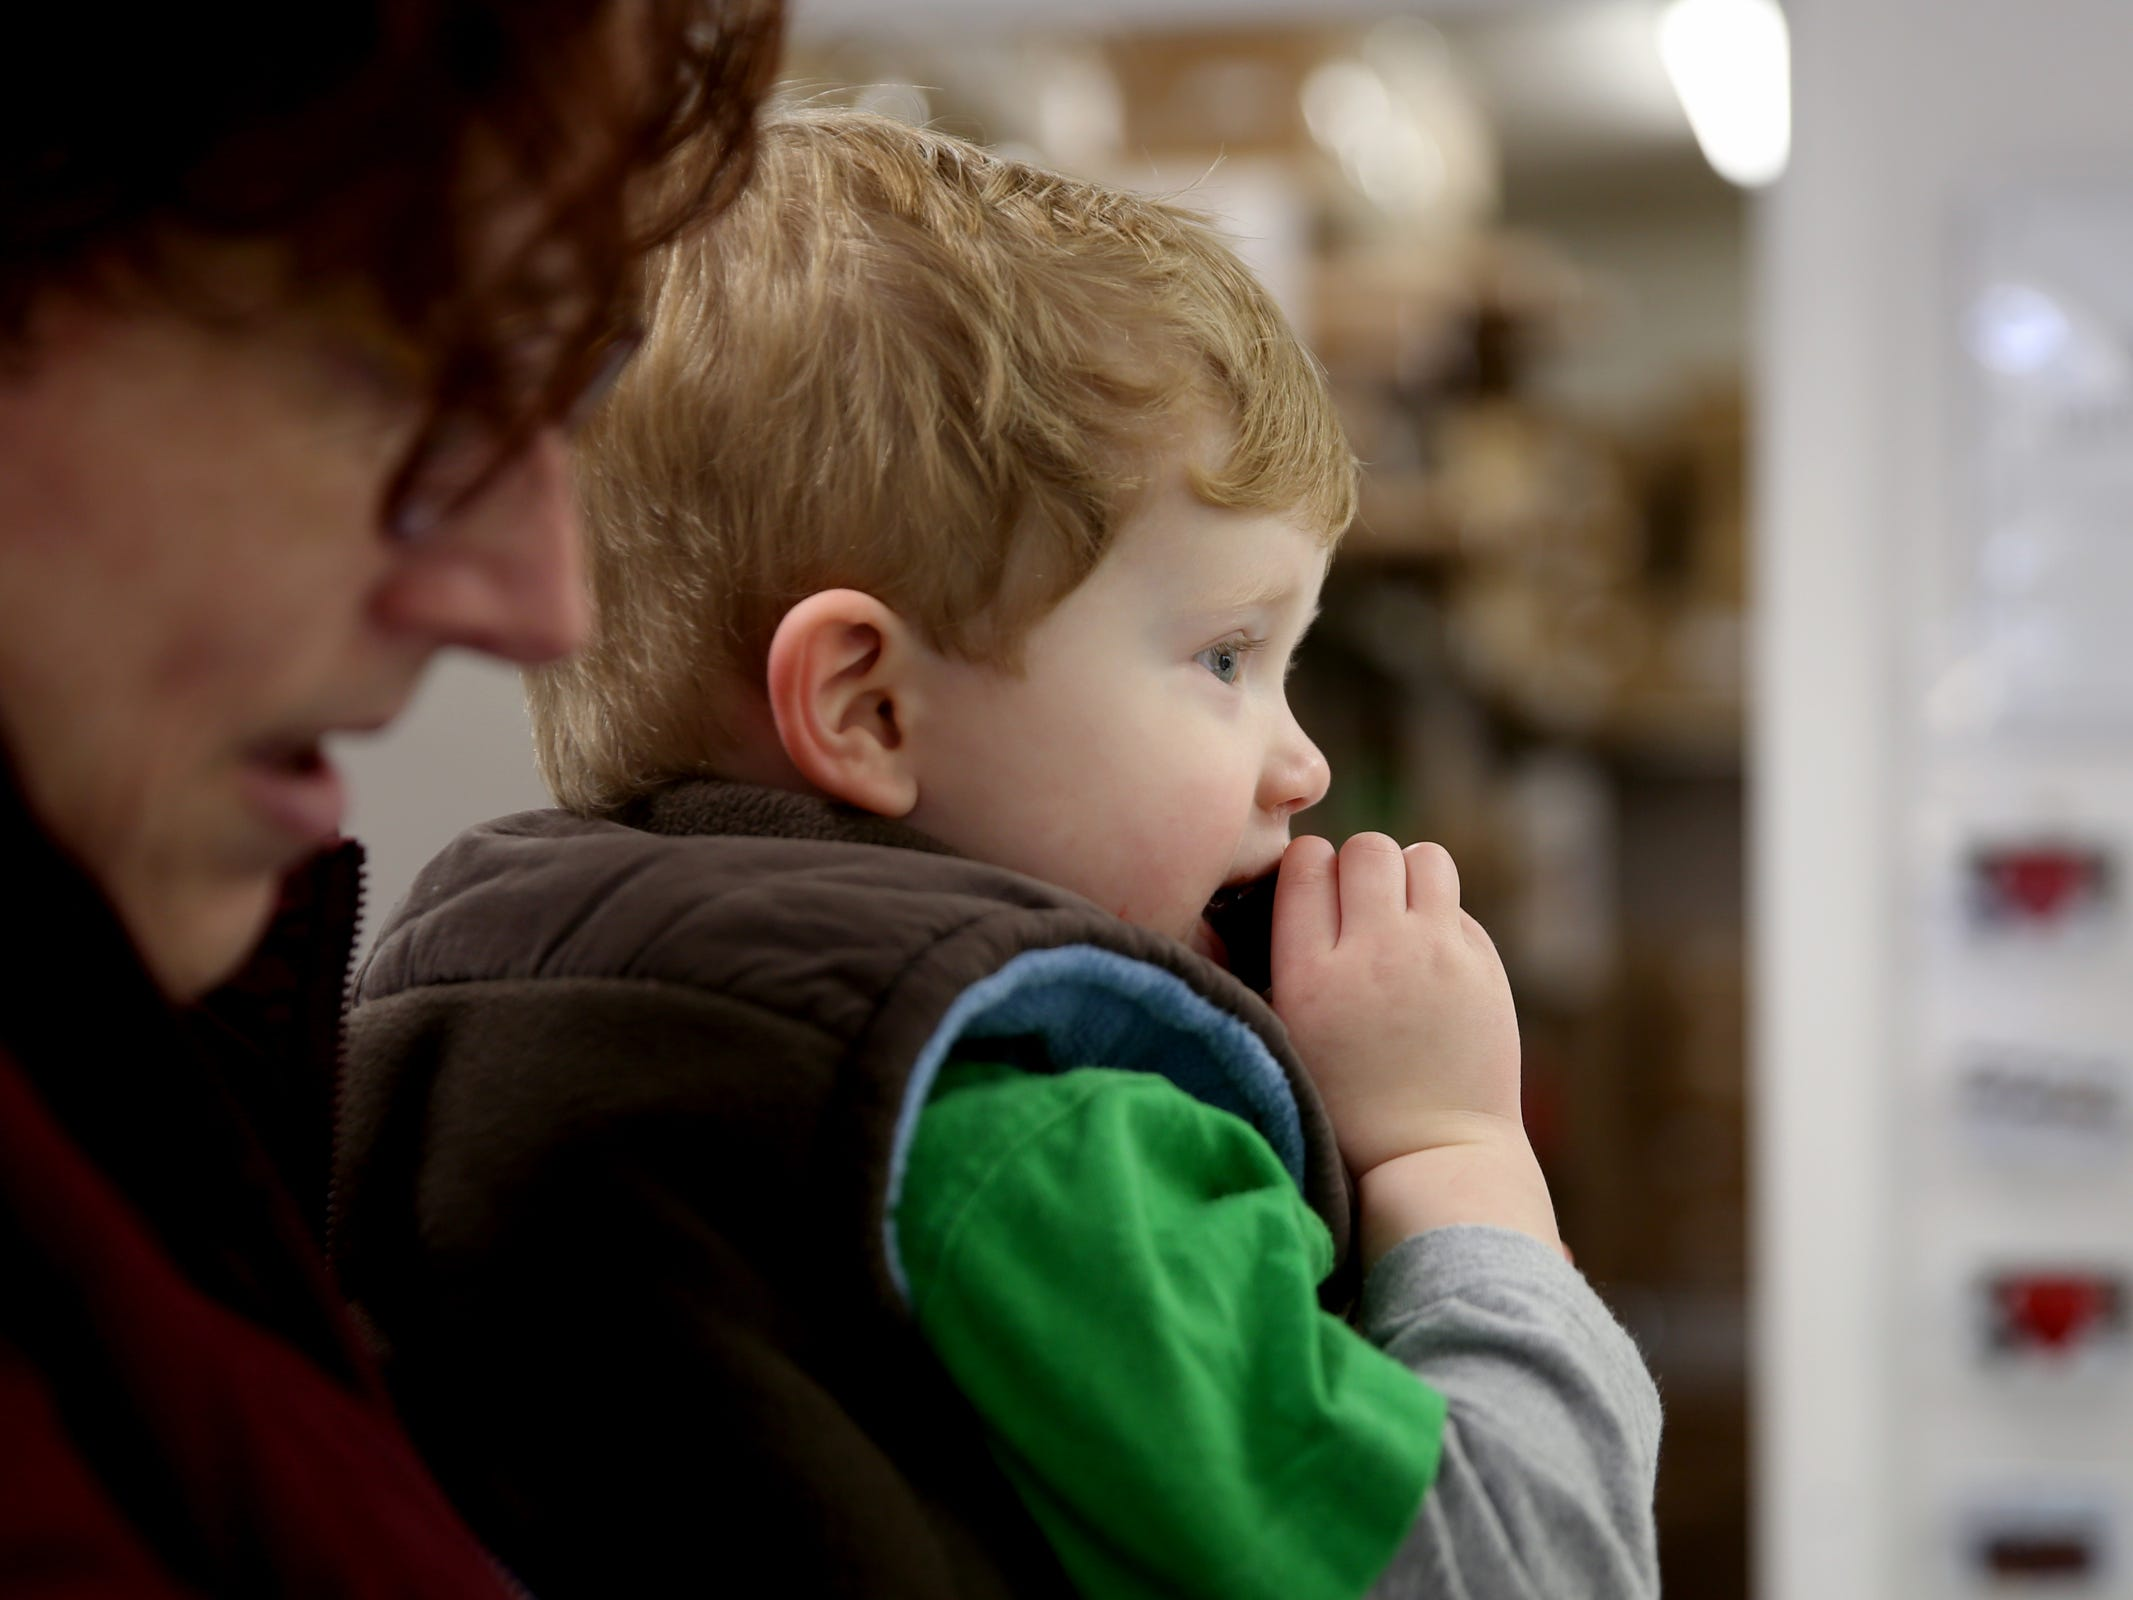 C.J. Wells, 2, of Salem, nibbles on a free sample at See's Candies in downtown Salem on Tuesday, Feb. 5, 2019.